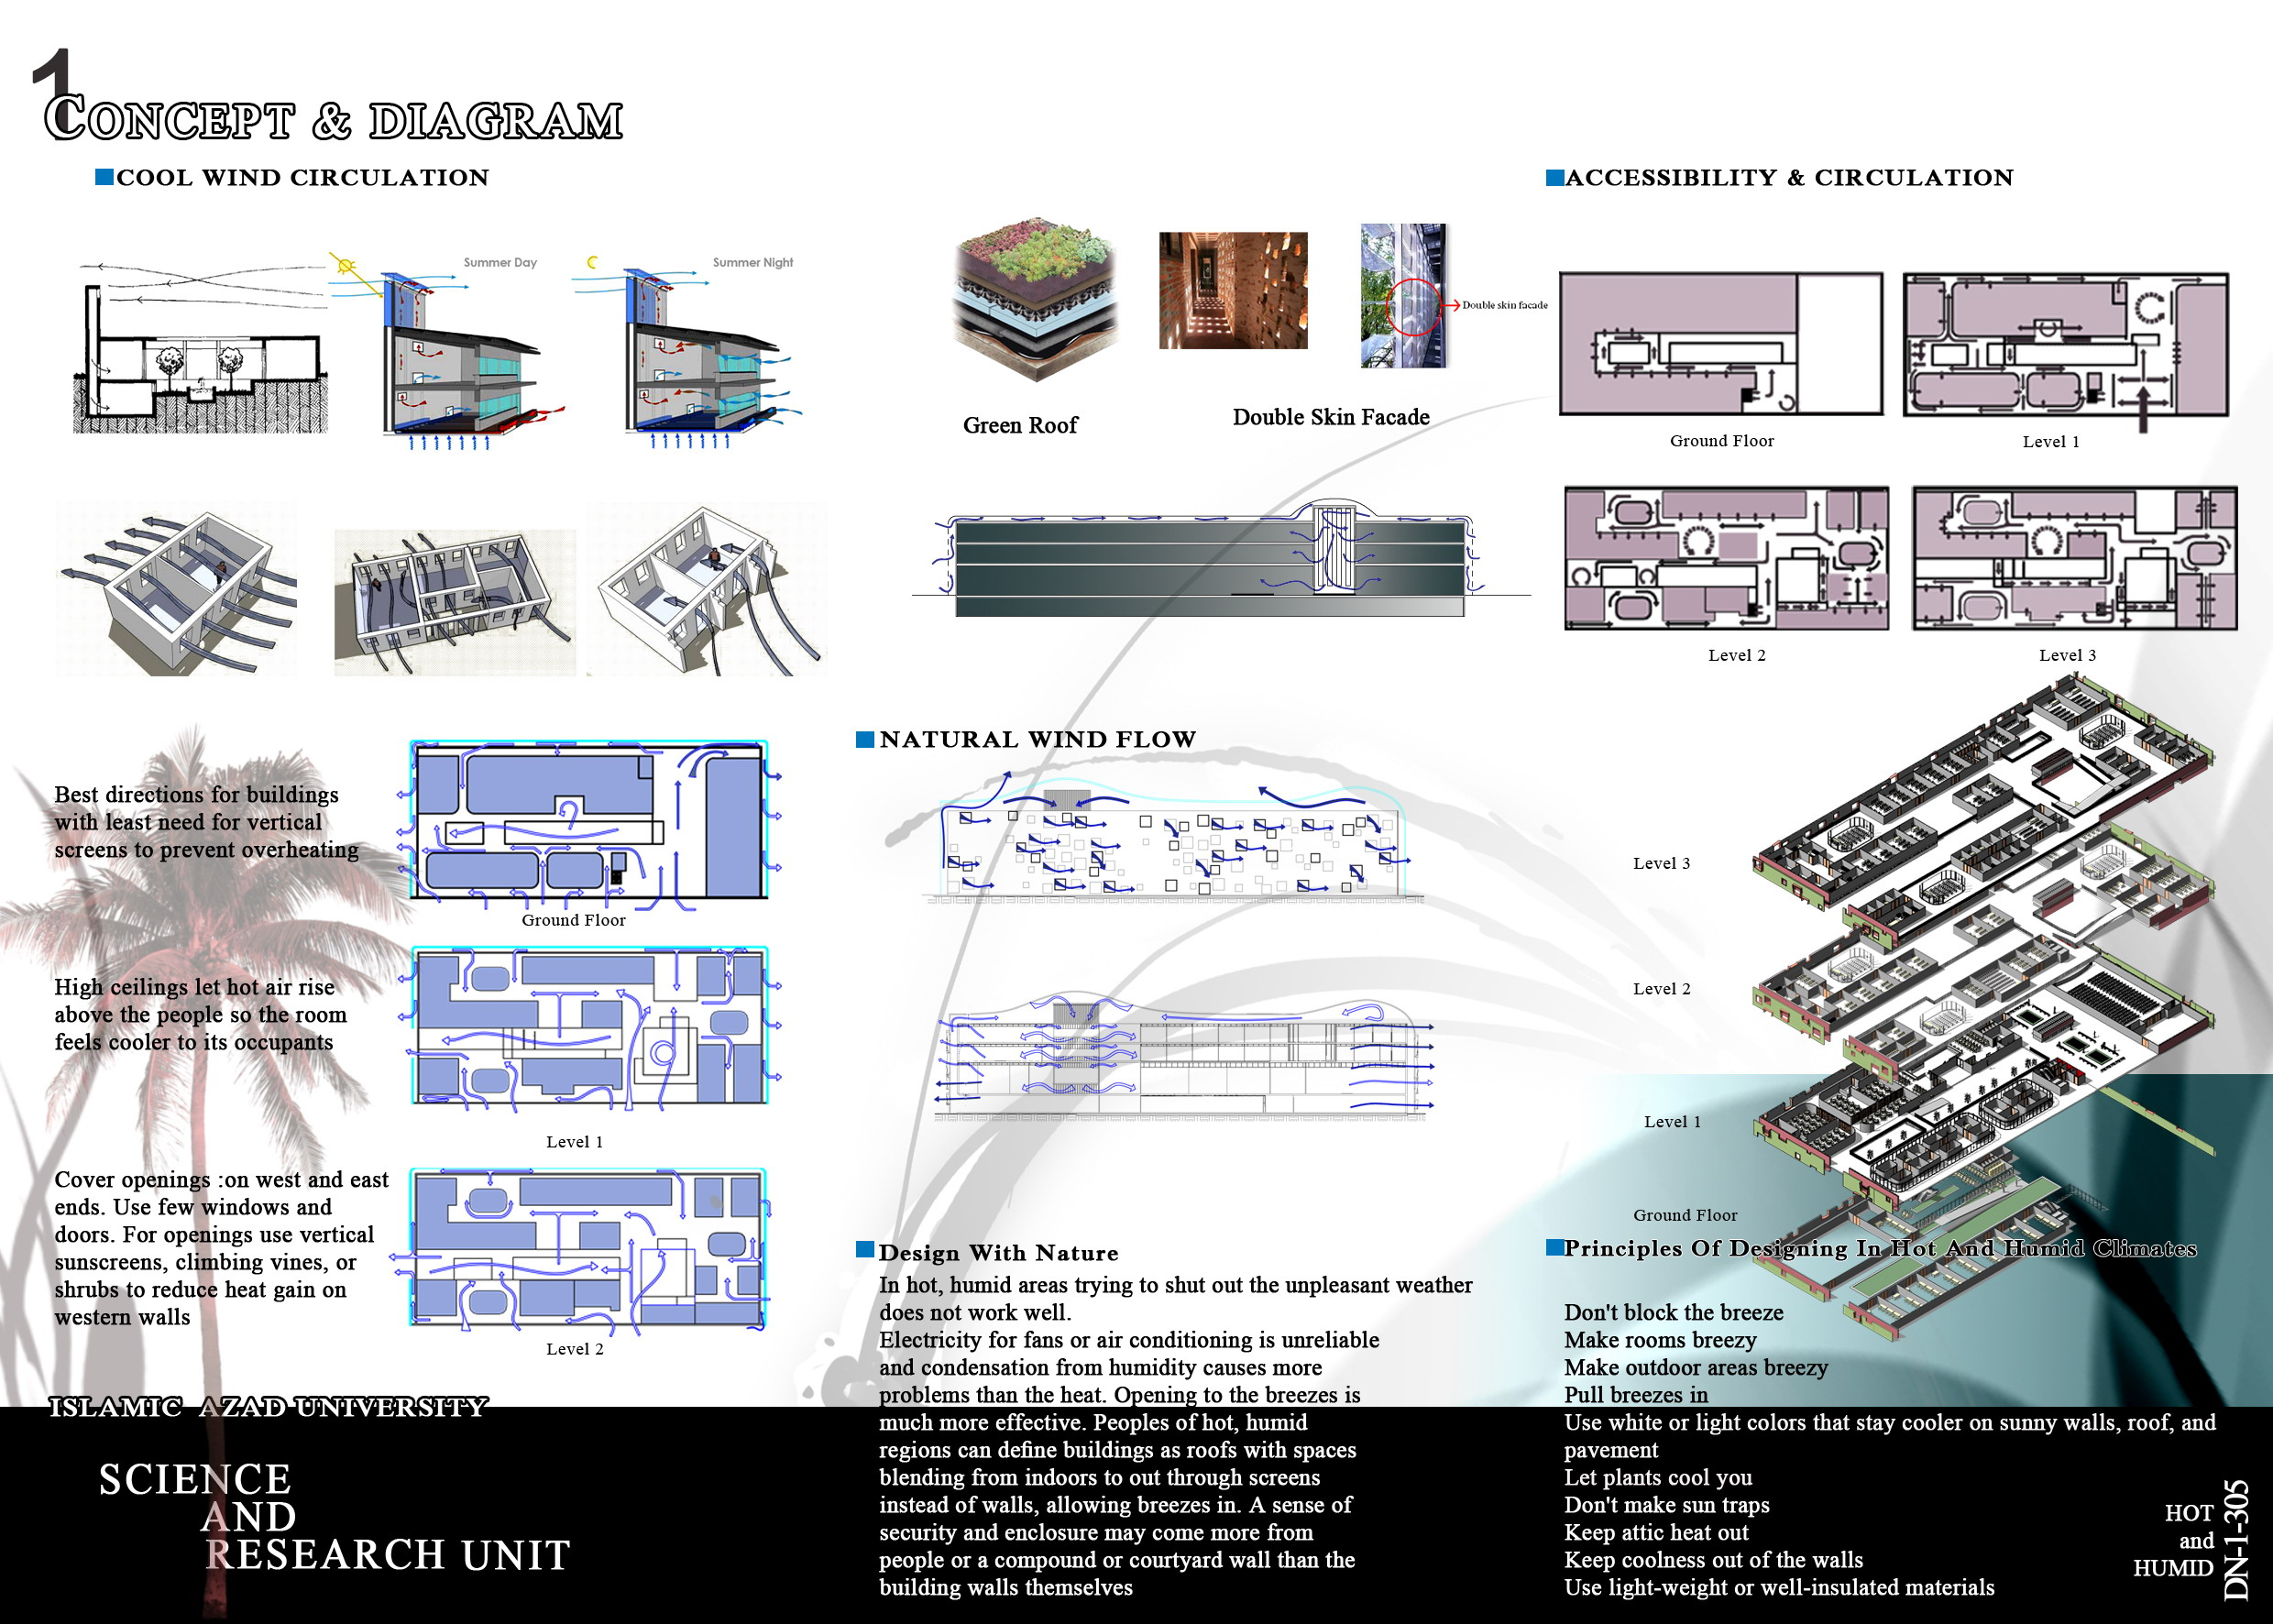 Islamic Azad University Science And Reserch Unit – Competition